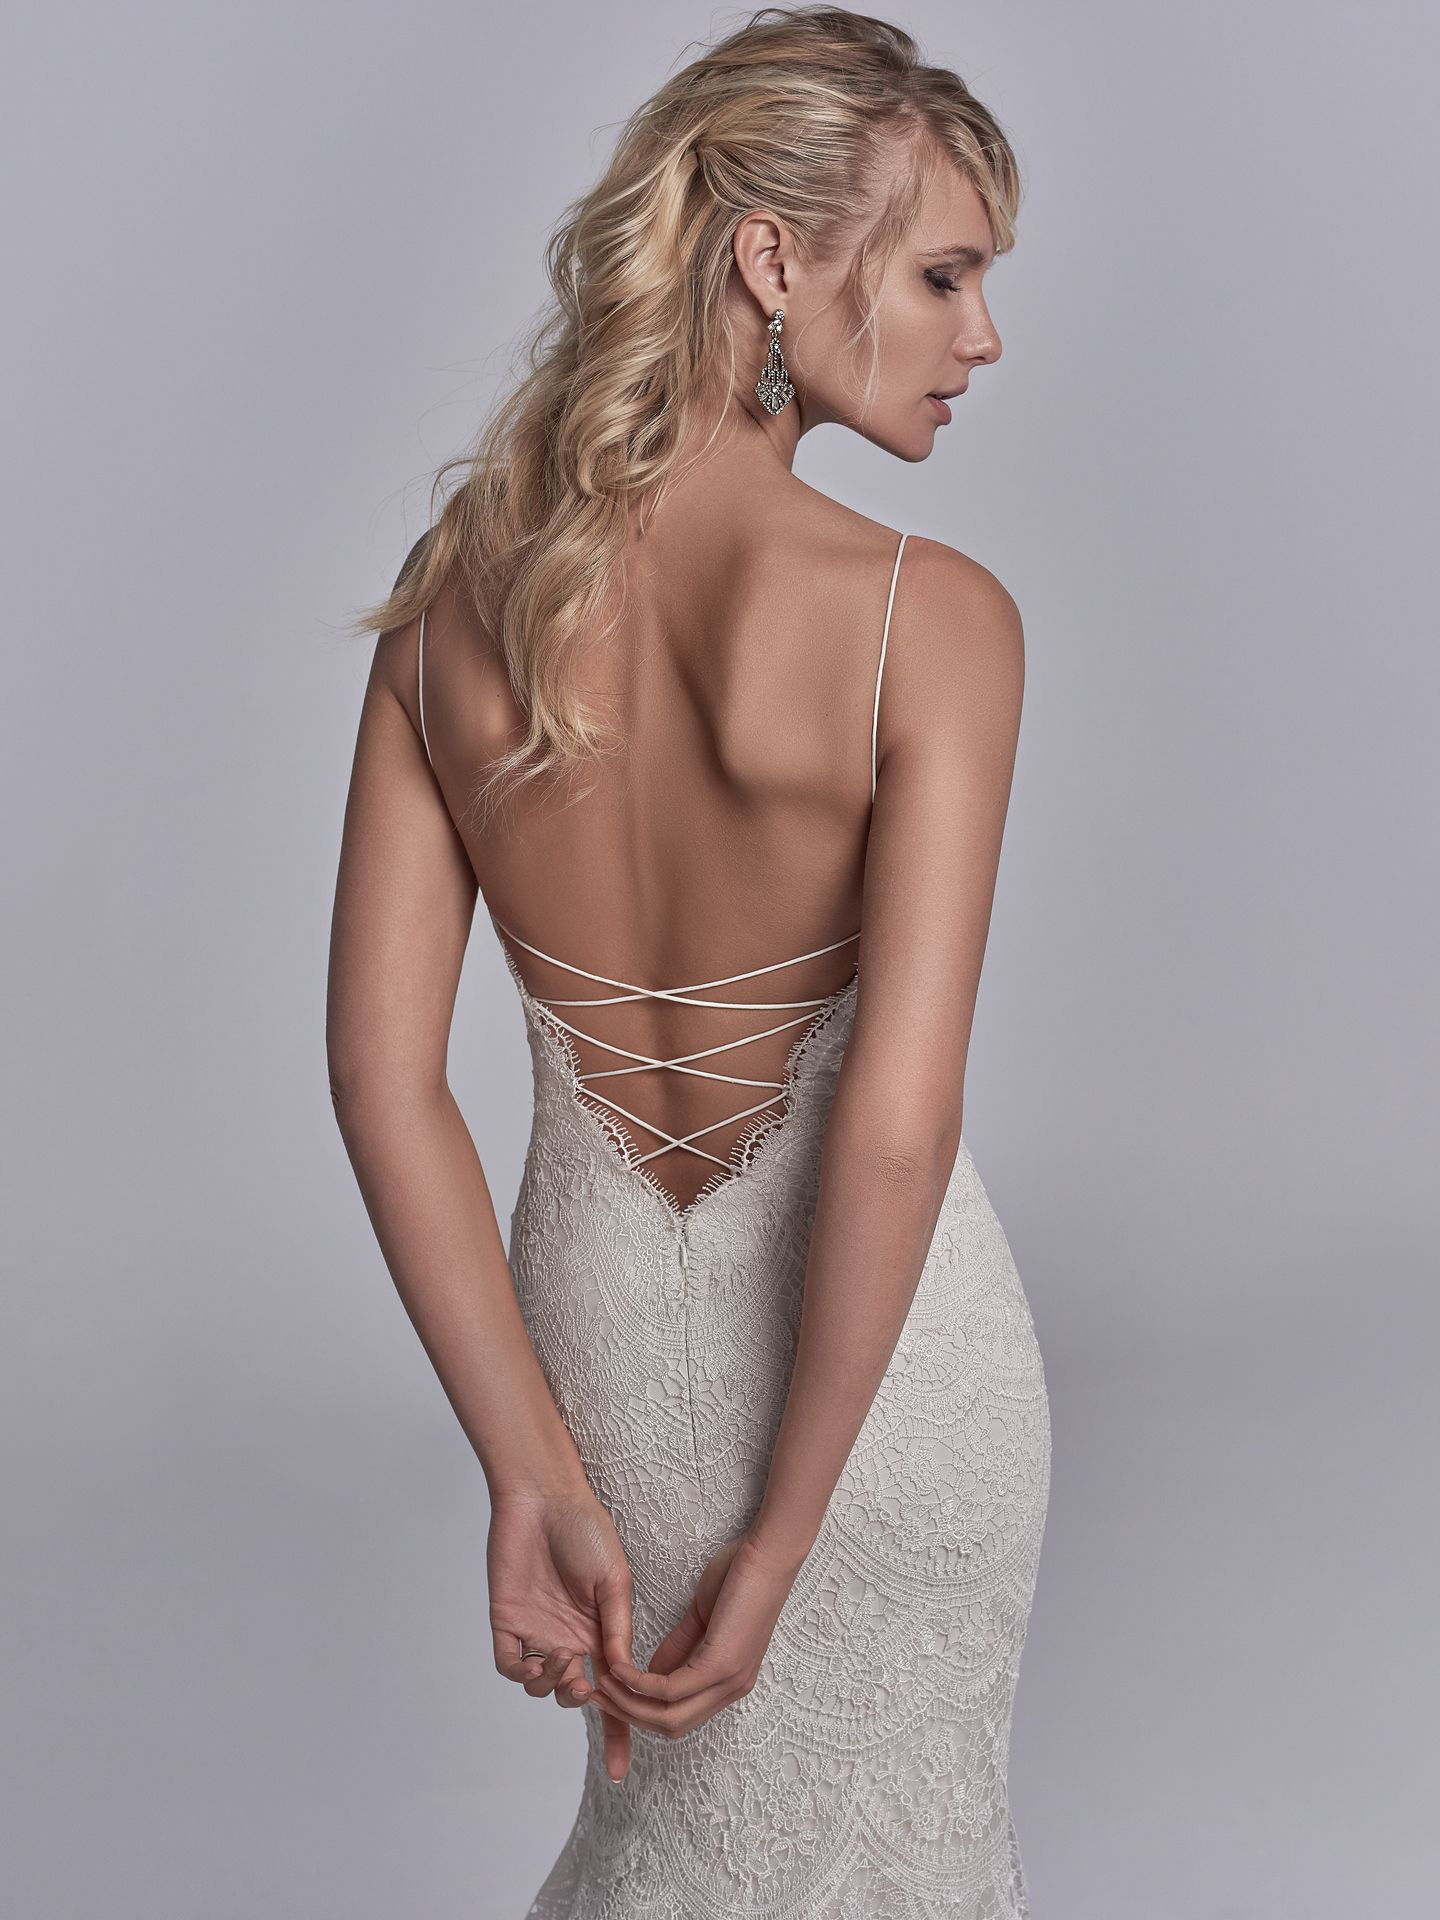 The Latest Wedding Dress Trends for Engagement Season 2018 - Maxwell Rose wedding dress with Jersey lining for a luxe, breezy and figure-flattering fit.